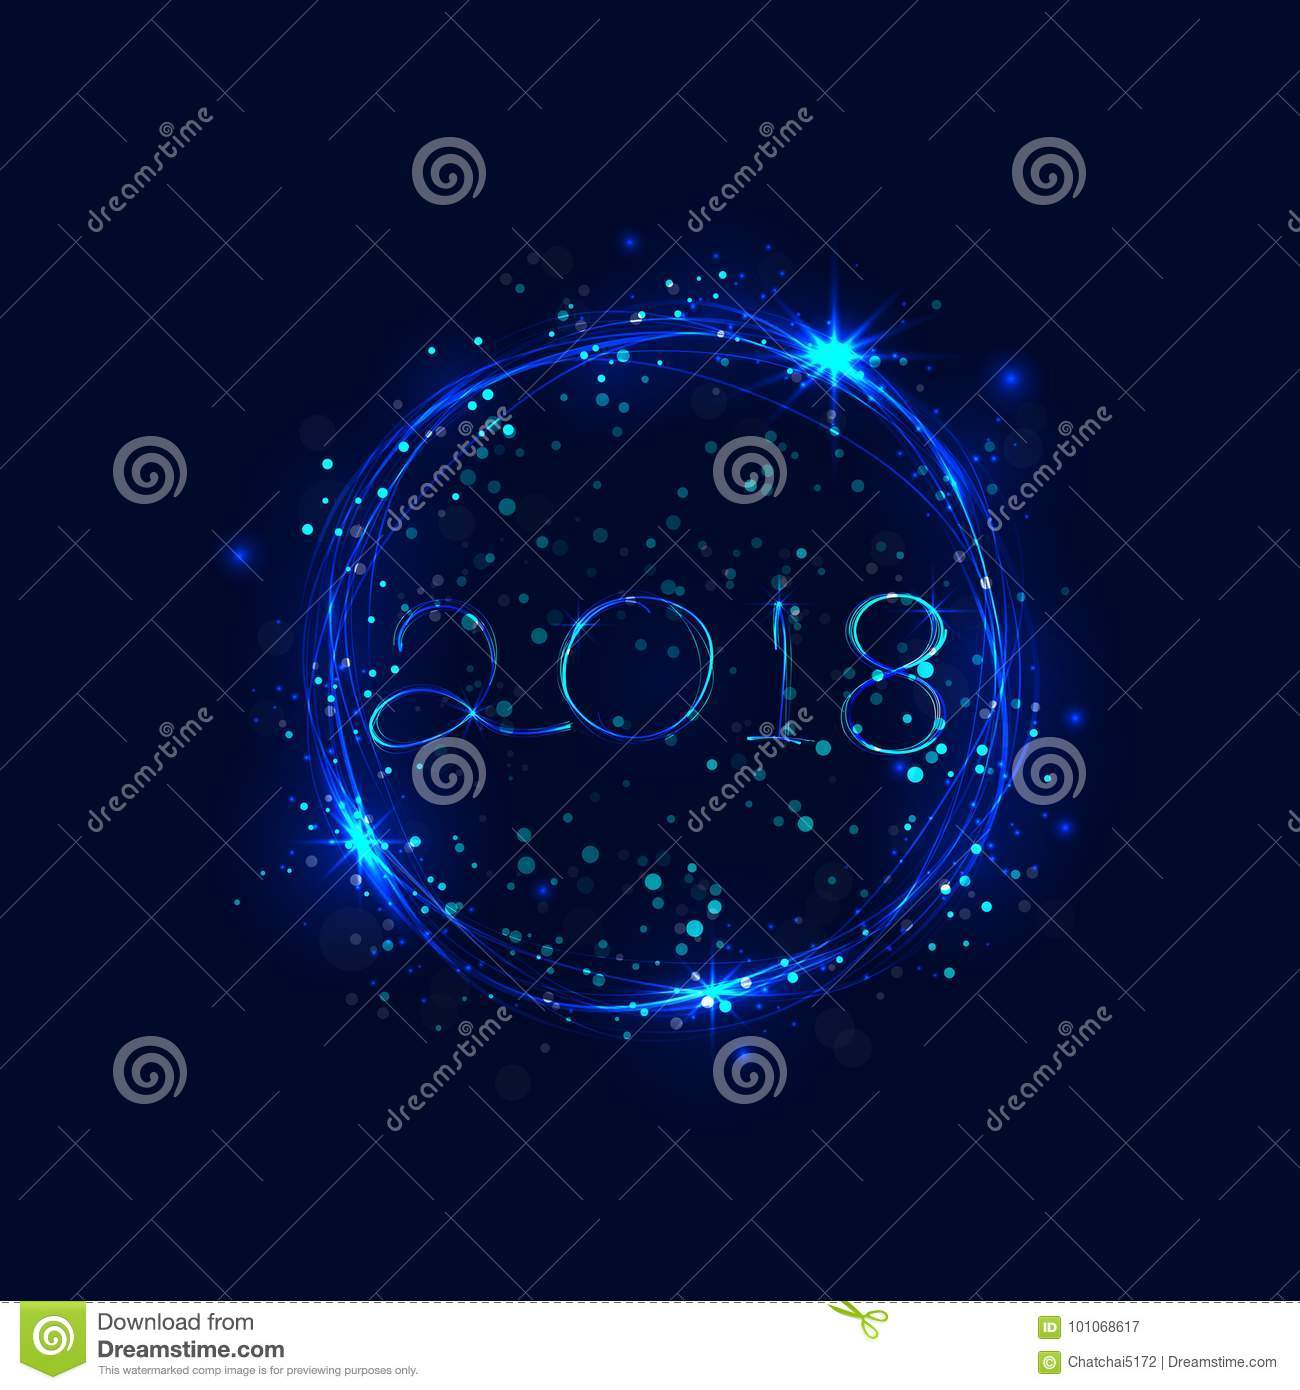 Happy new year 2018 holiday background2018 happy new year greet download happy new year 2018 holiday background2018 happy new year greet stock vector m4hsunfo